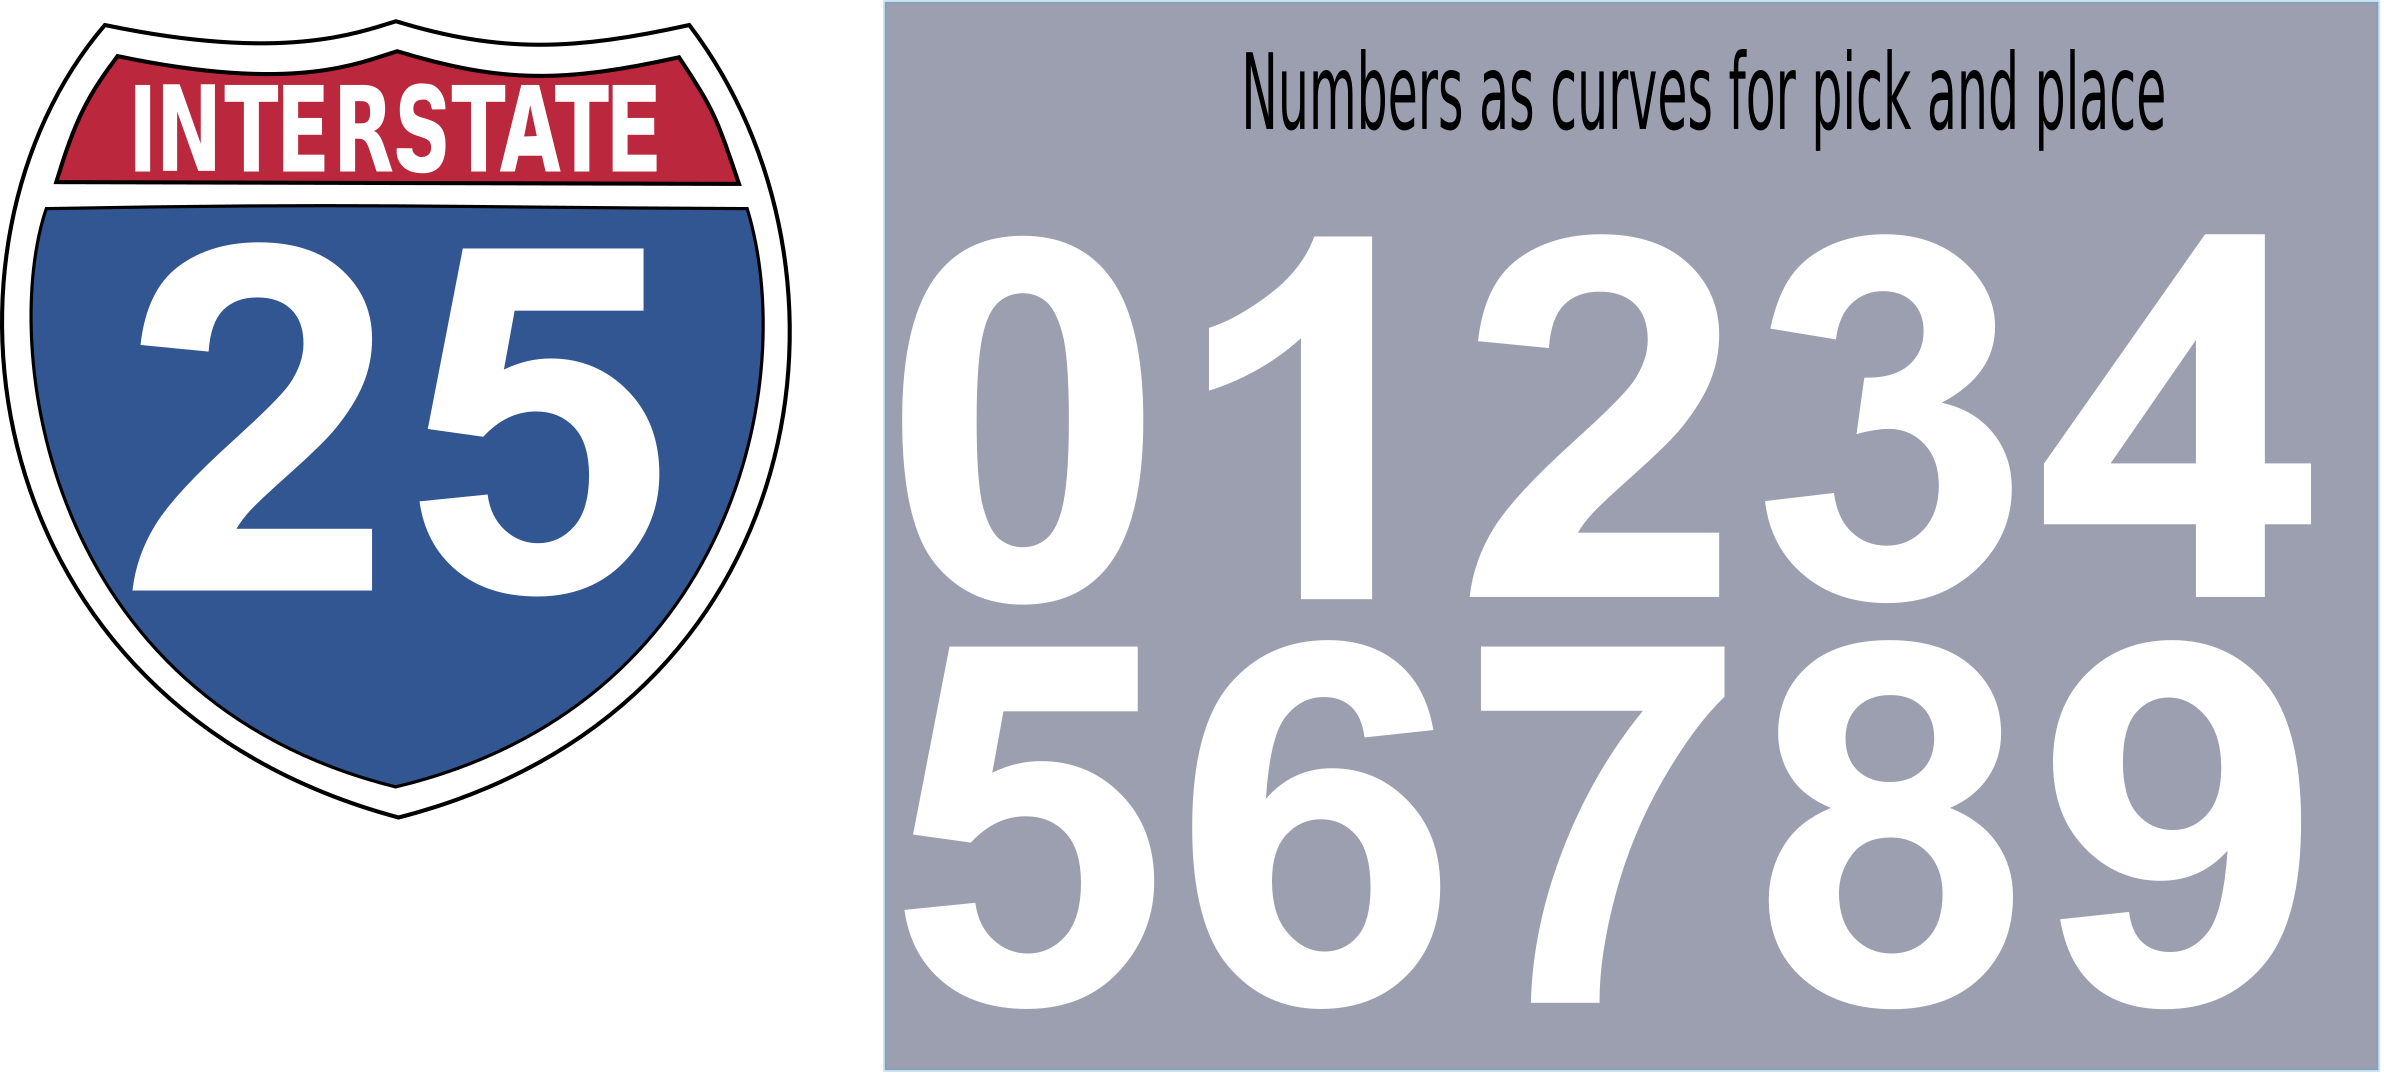 Clipart road roadway. Interstate highway sign big